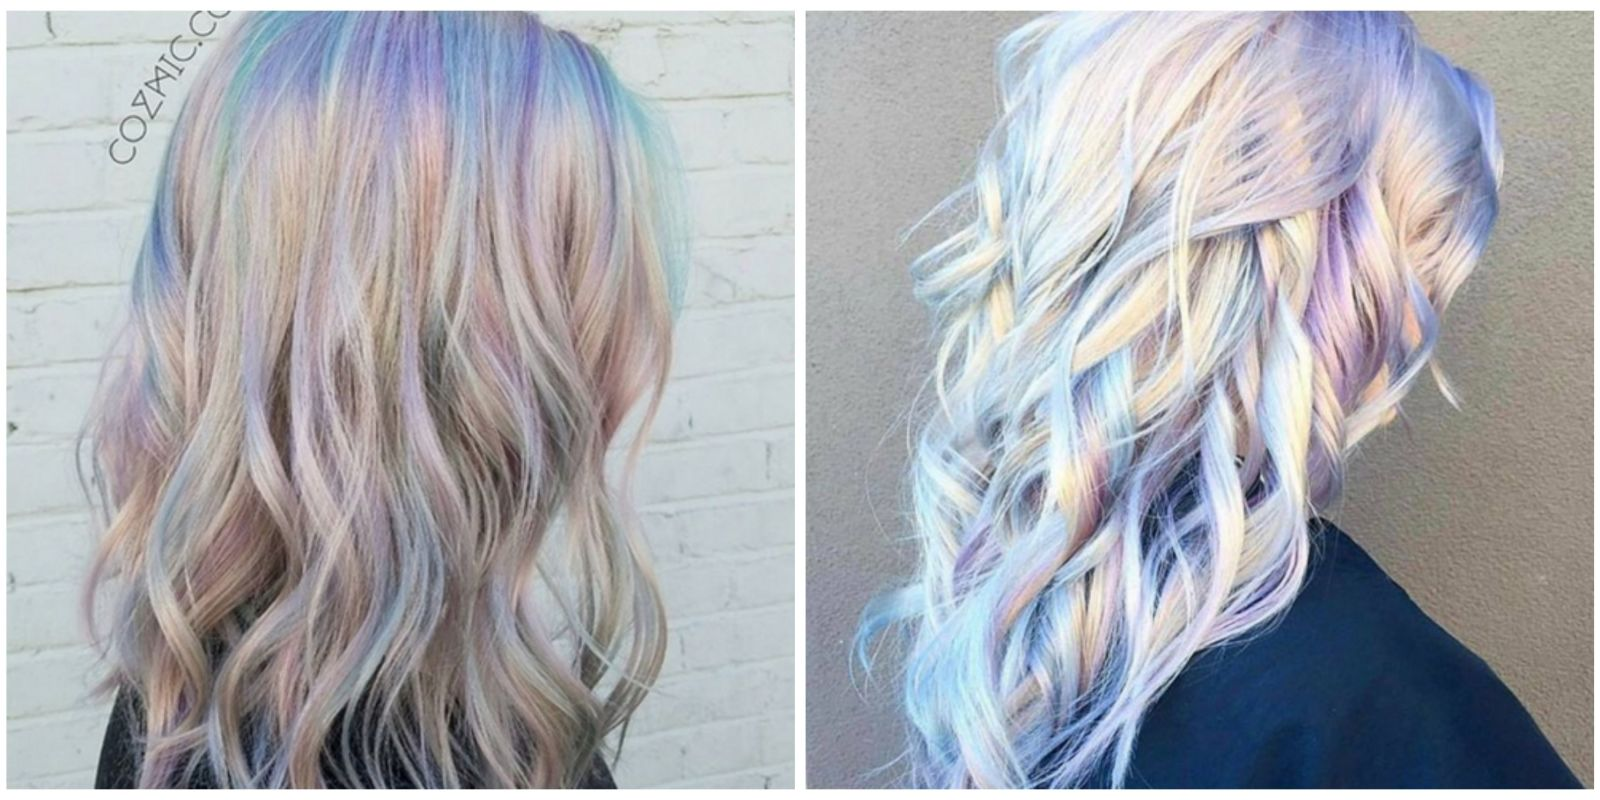 Holographic Hair Latest Trend